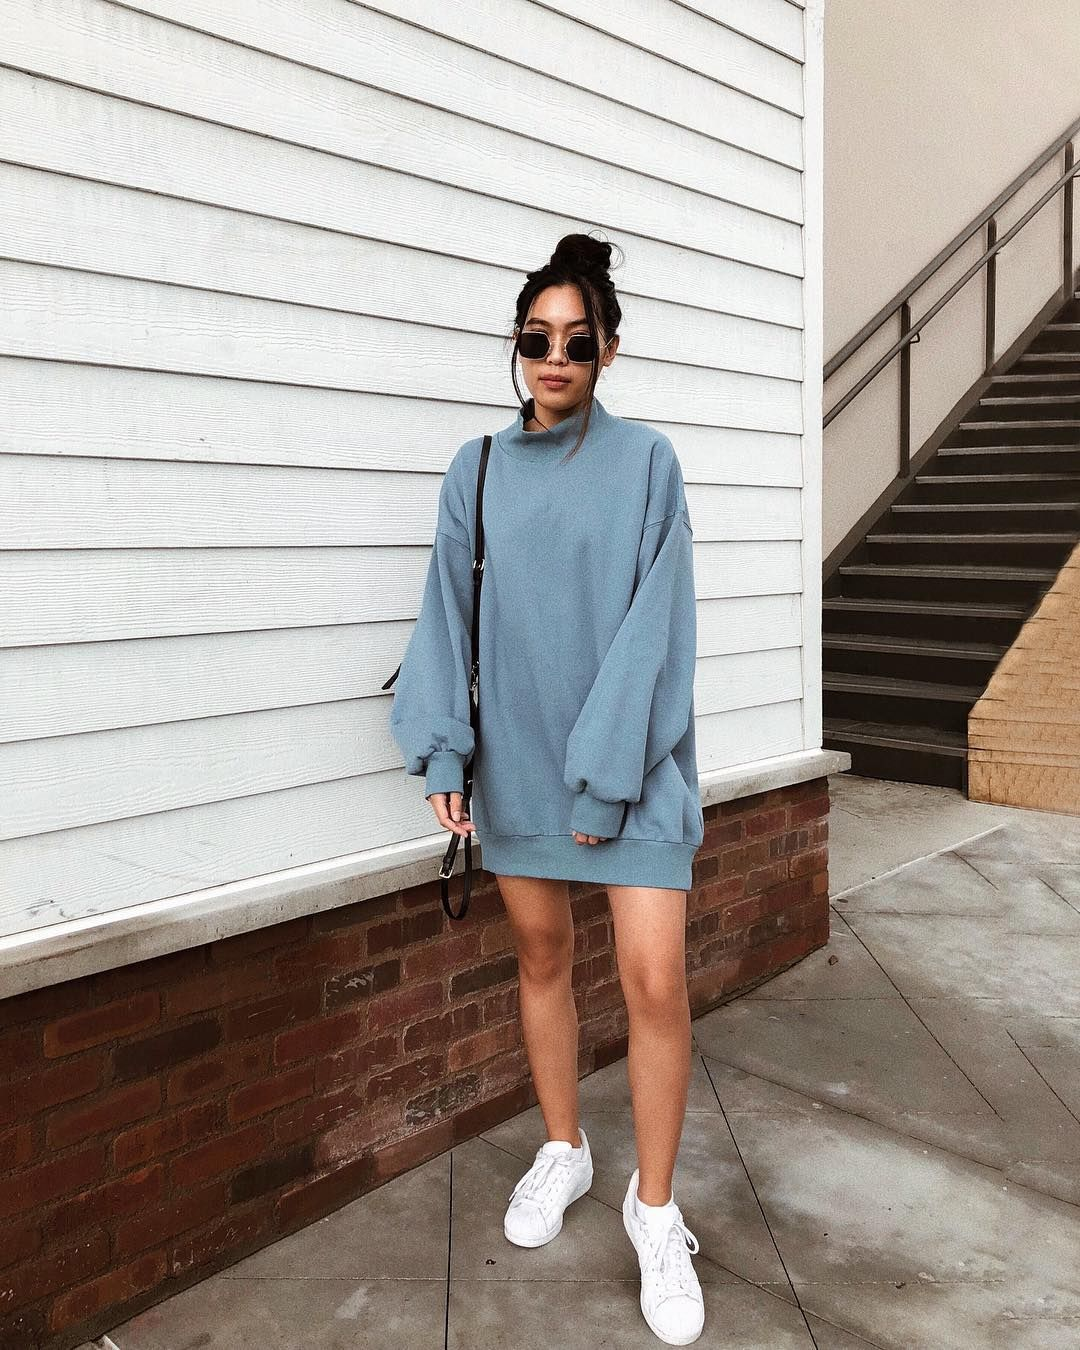 Alyssa May On Instagram The Sneaker Dress Combo Is Transitioning Over Into The Fall Season Dress With Sneakers Sweater Dress Oversized Dress With Converse [ 1350 x 1080 Pixel ]